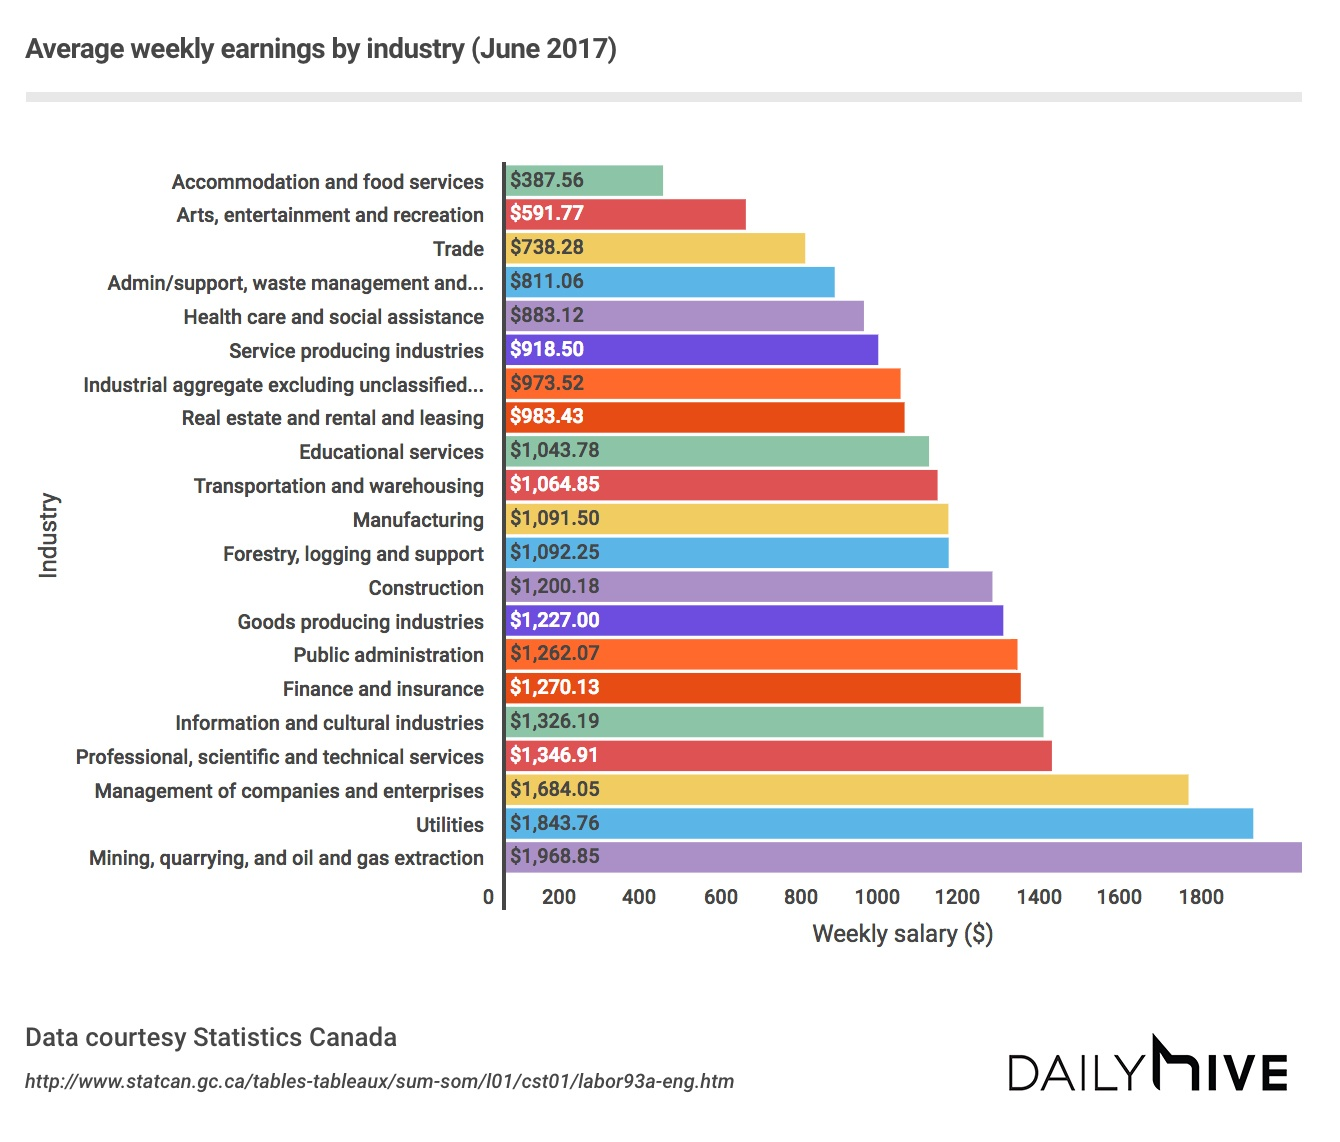 Average Weekly Earnings In Canada Based On Industry (CHART